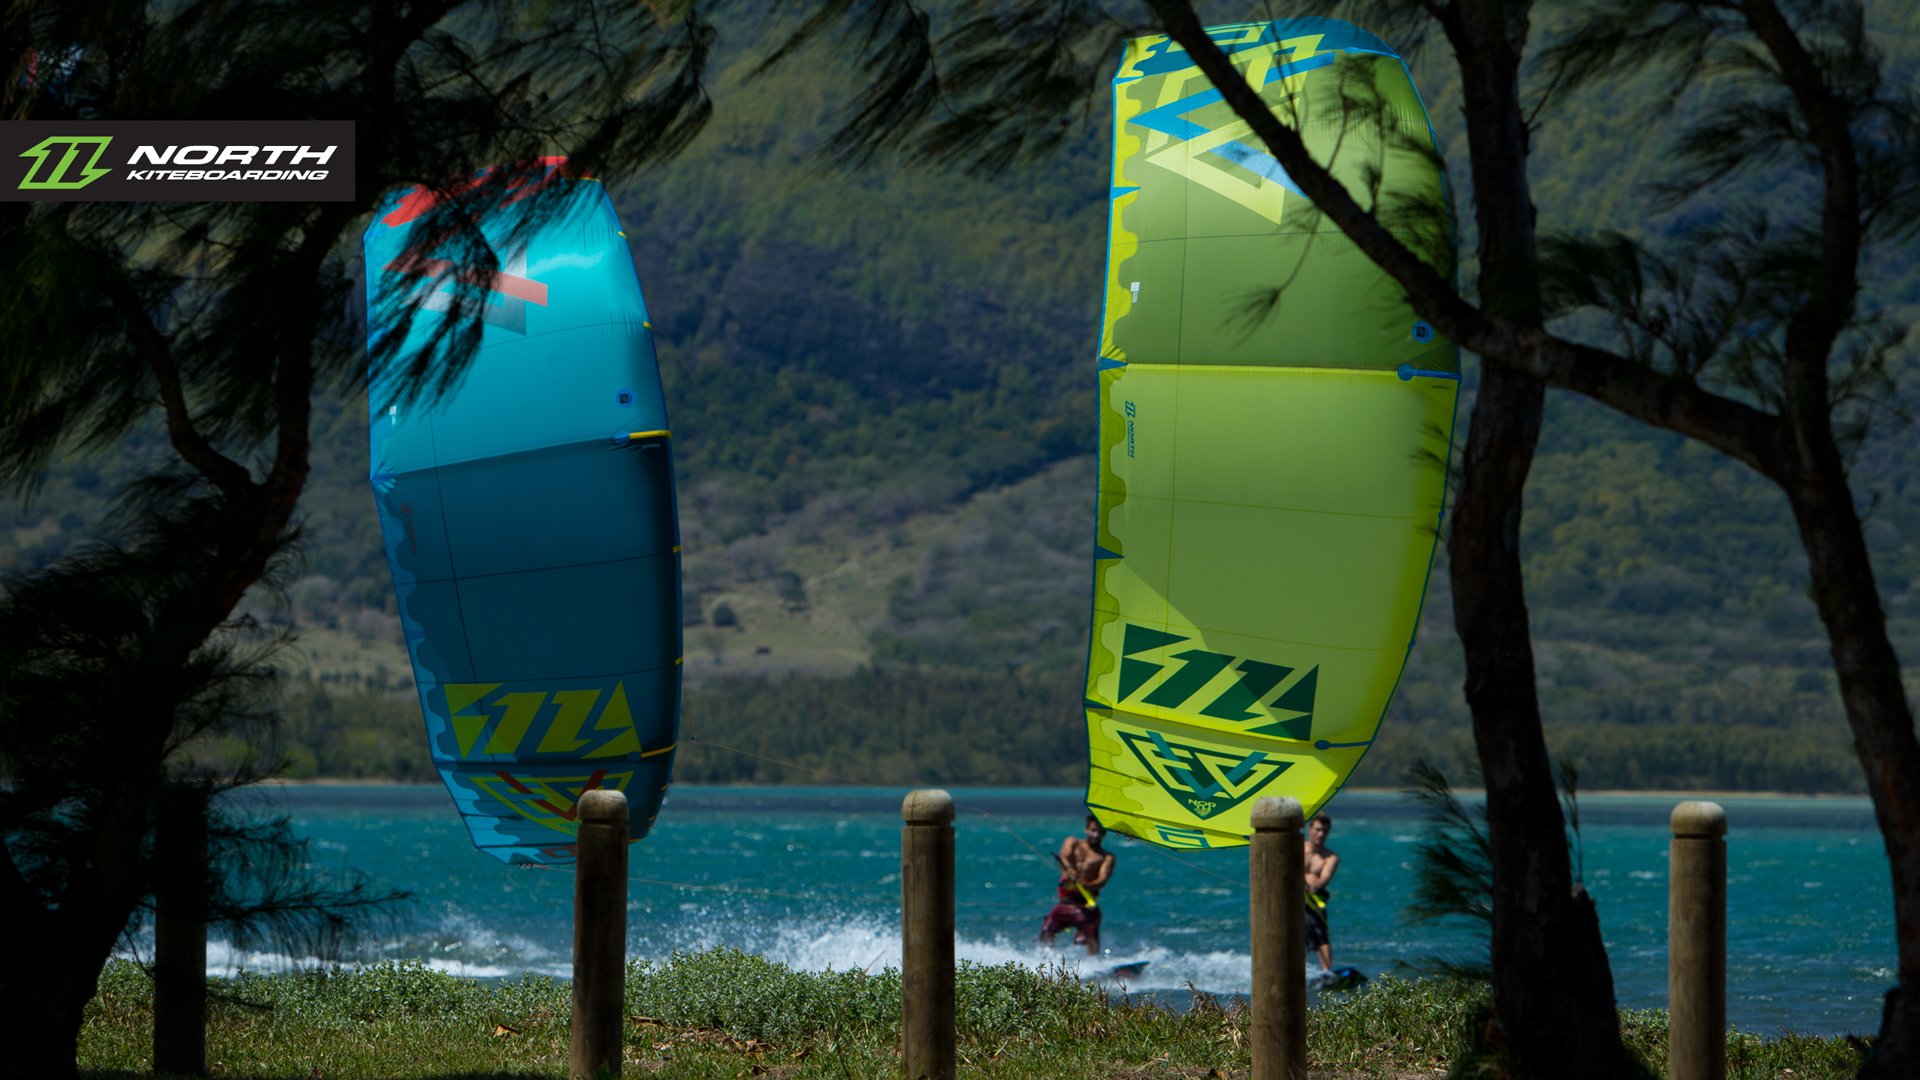 kitesurf wallpaper image - North Evo 2015 duo cruising between the trees - kitesurfing - in resolution: High Definition - HD 16:9 1920 X 1080